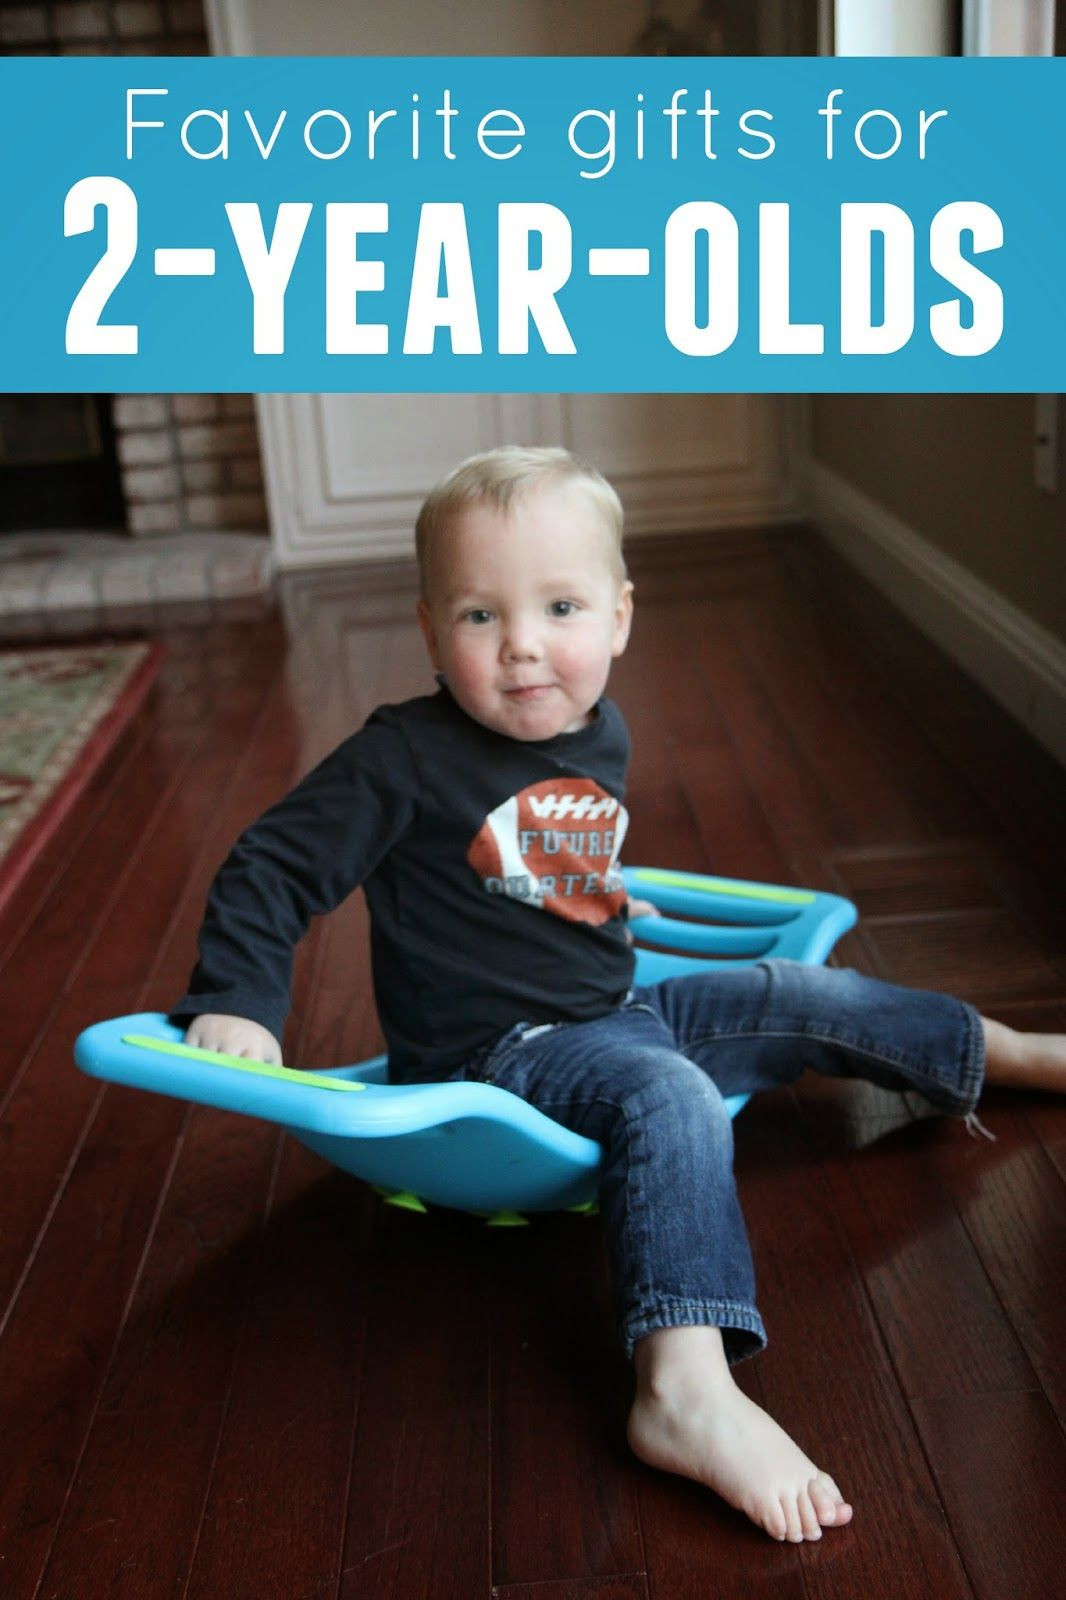 Gift Ideas For 2 Year Old Boys  Favorite Gifts for 2 Year Olds